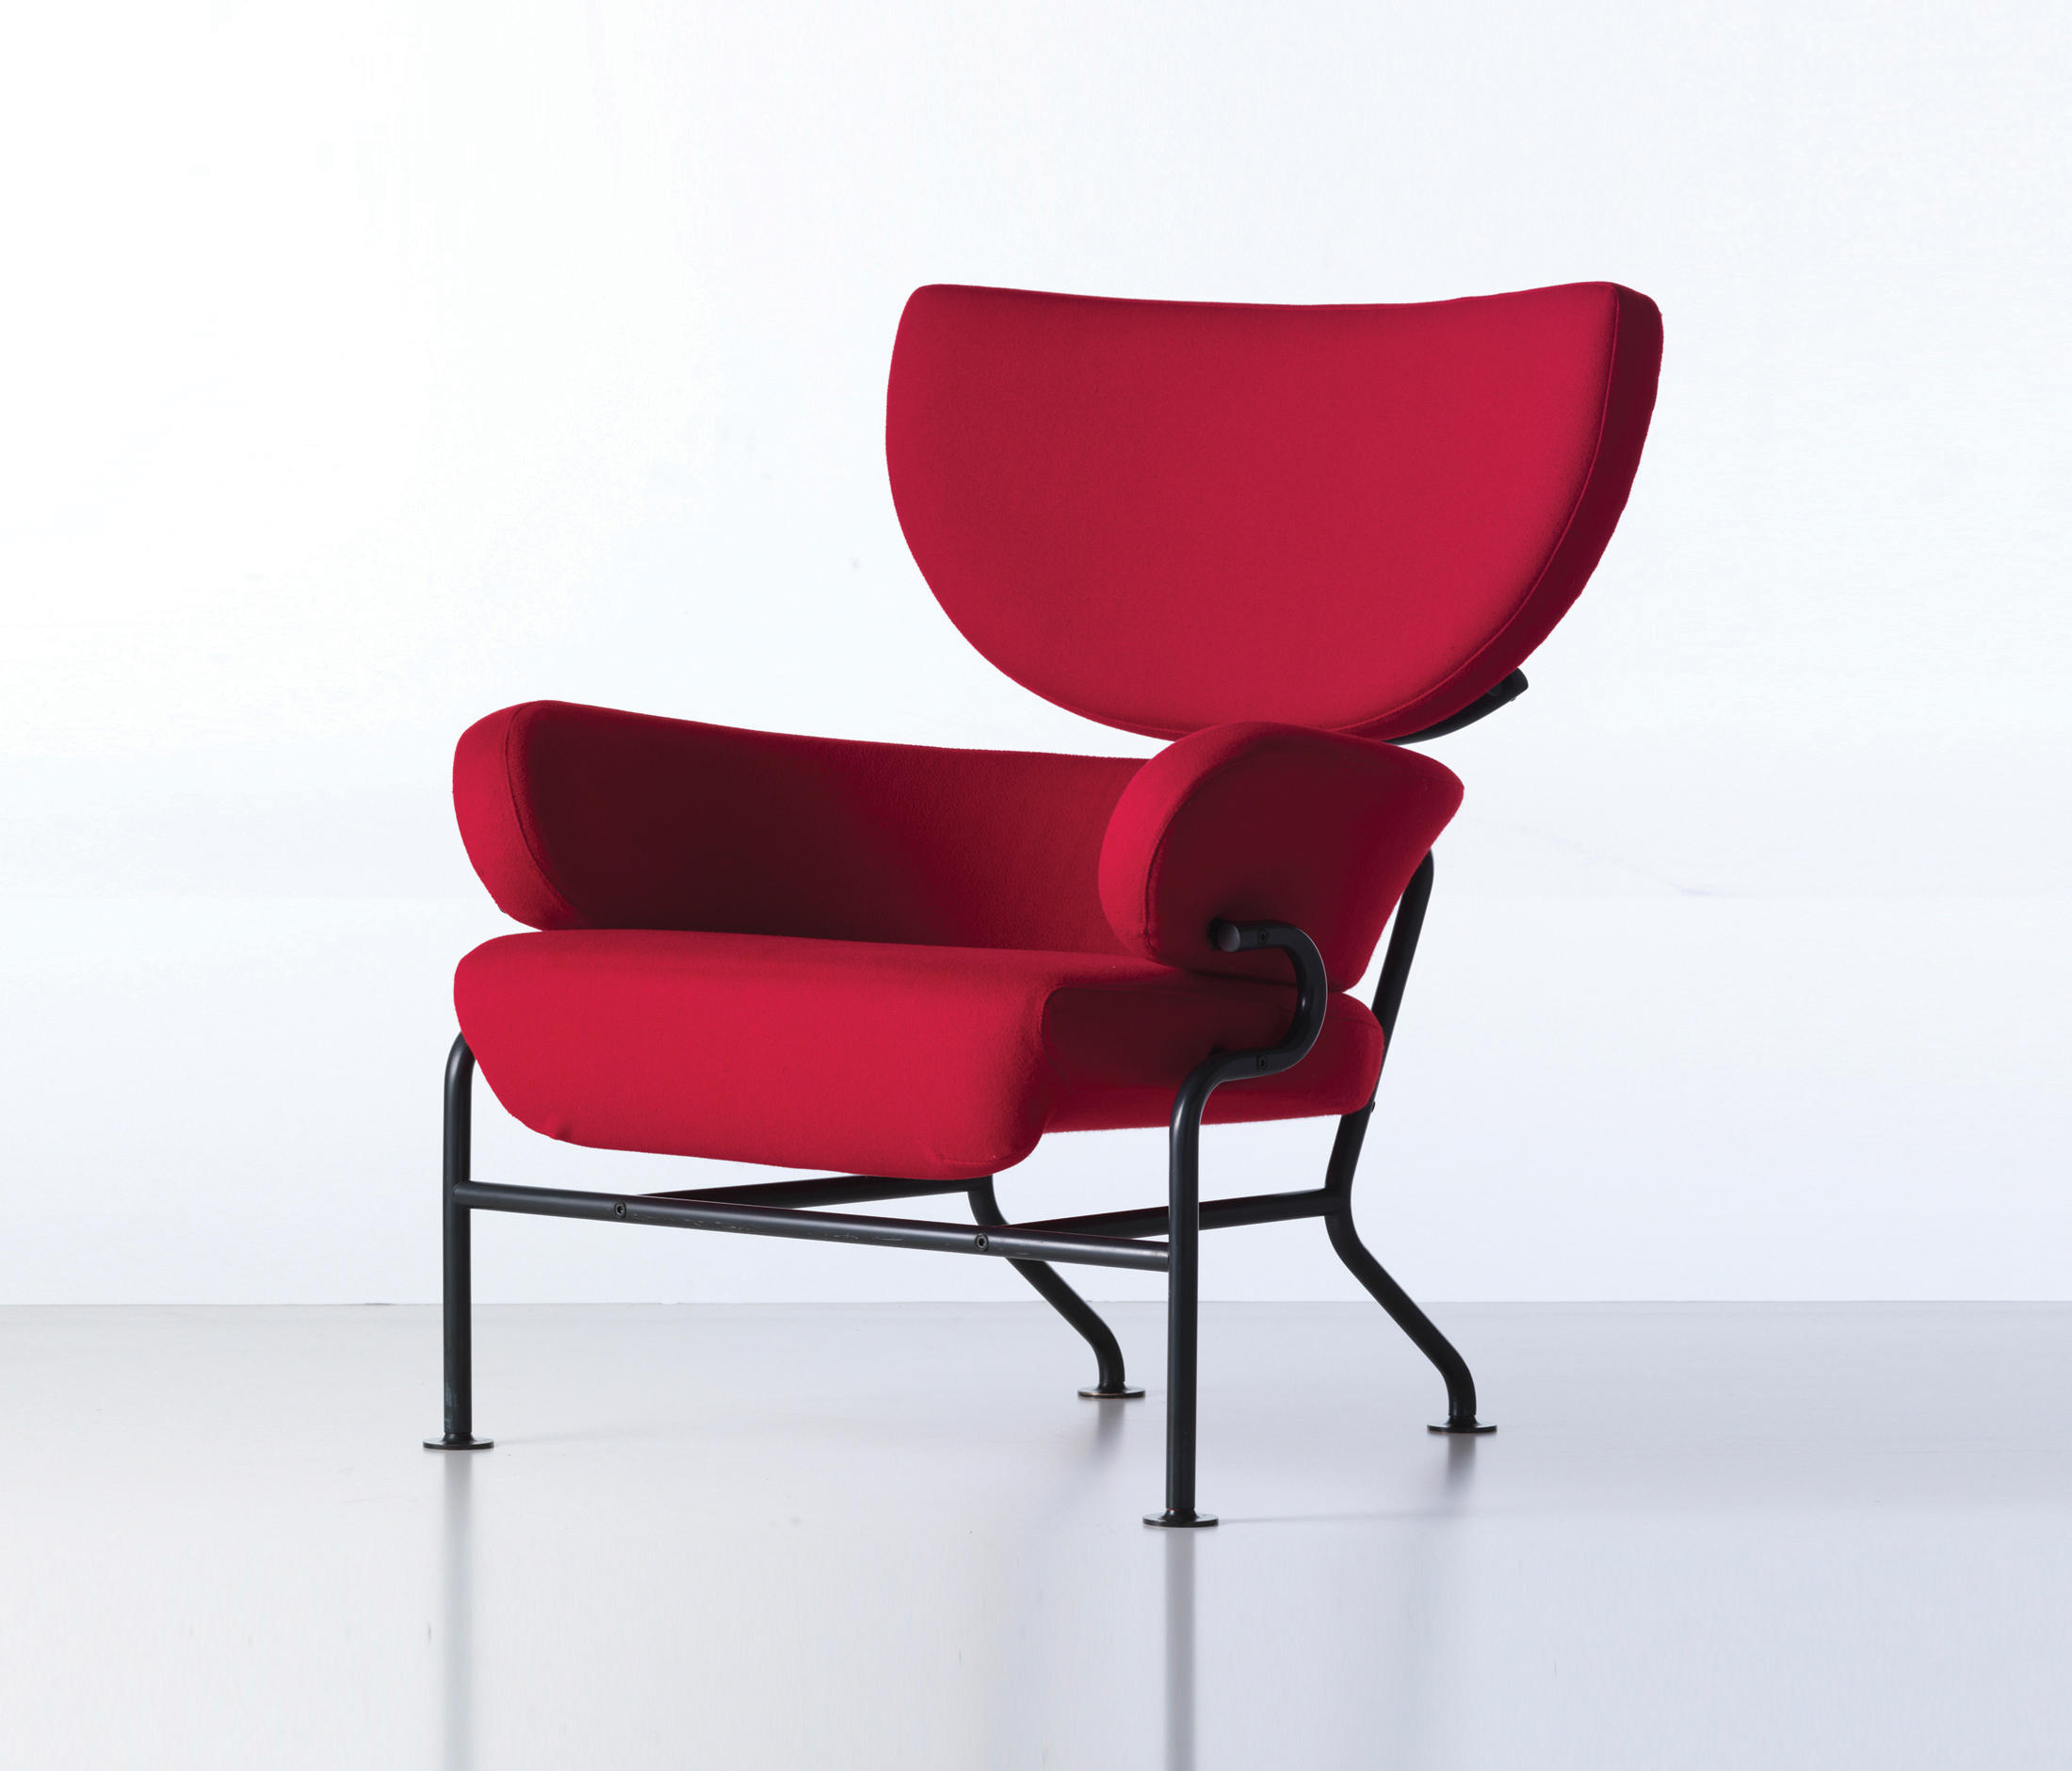 836 TRE PEZZI Lounge chairs from Cassina